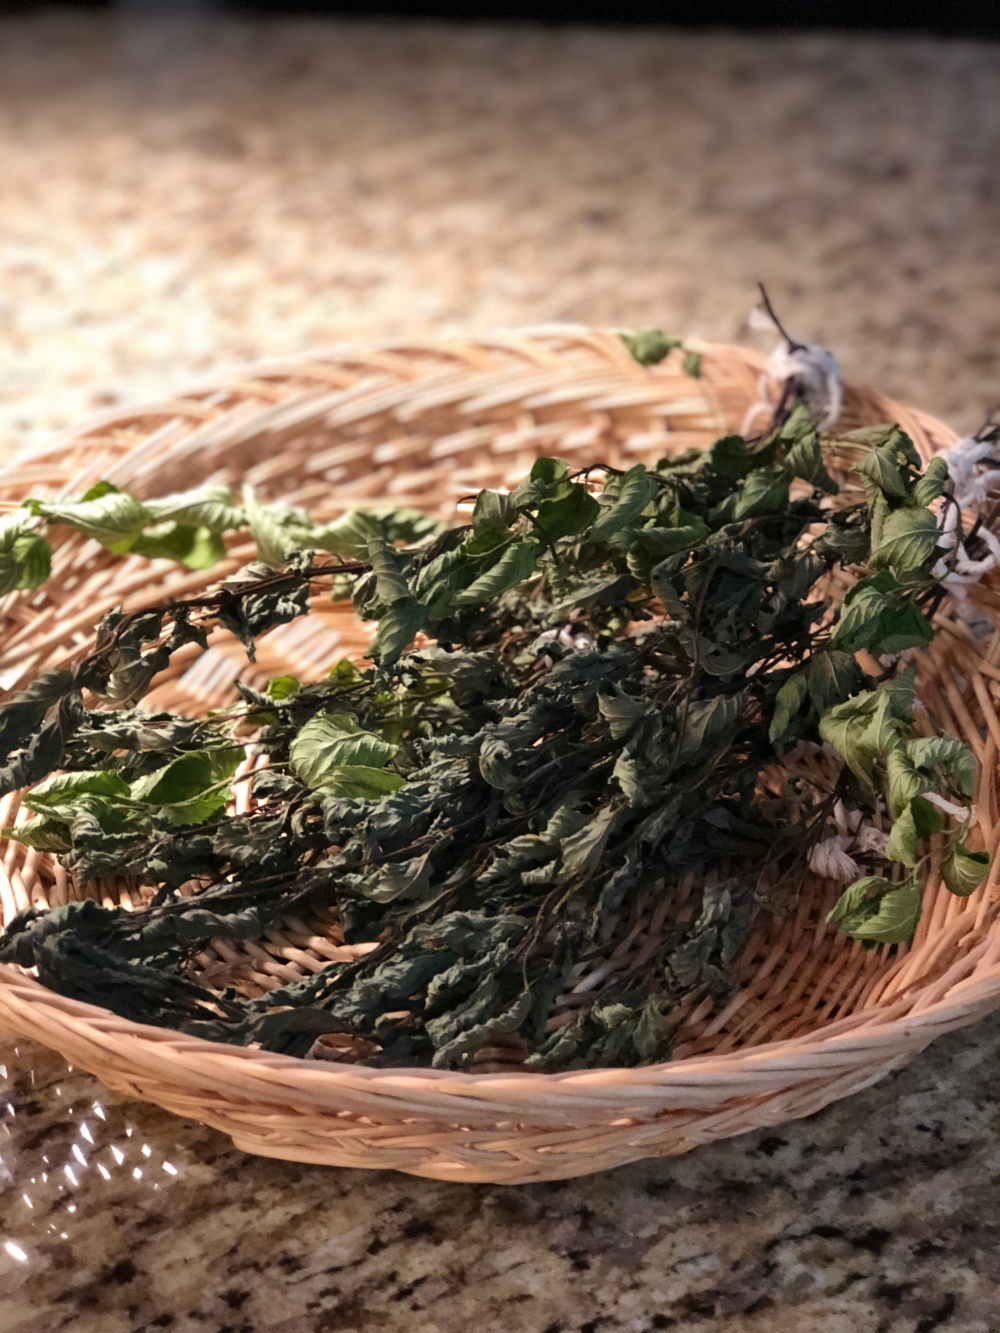 The image shows a basket filled with dried mint sprigs on a granite counter top.